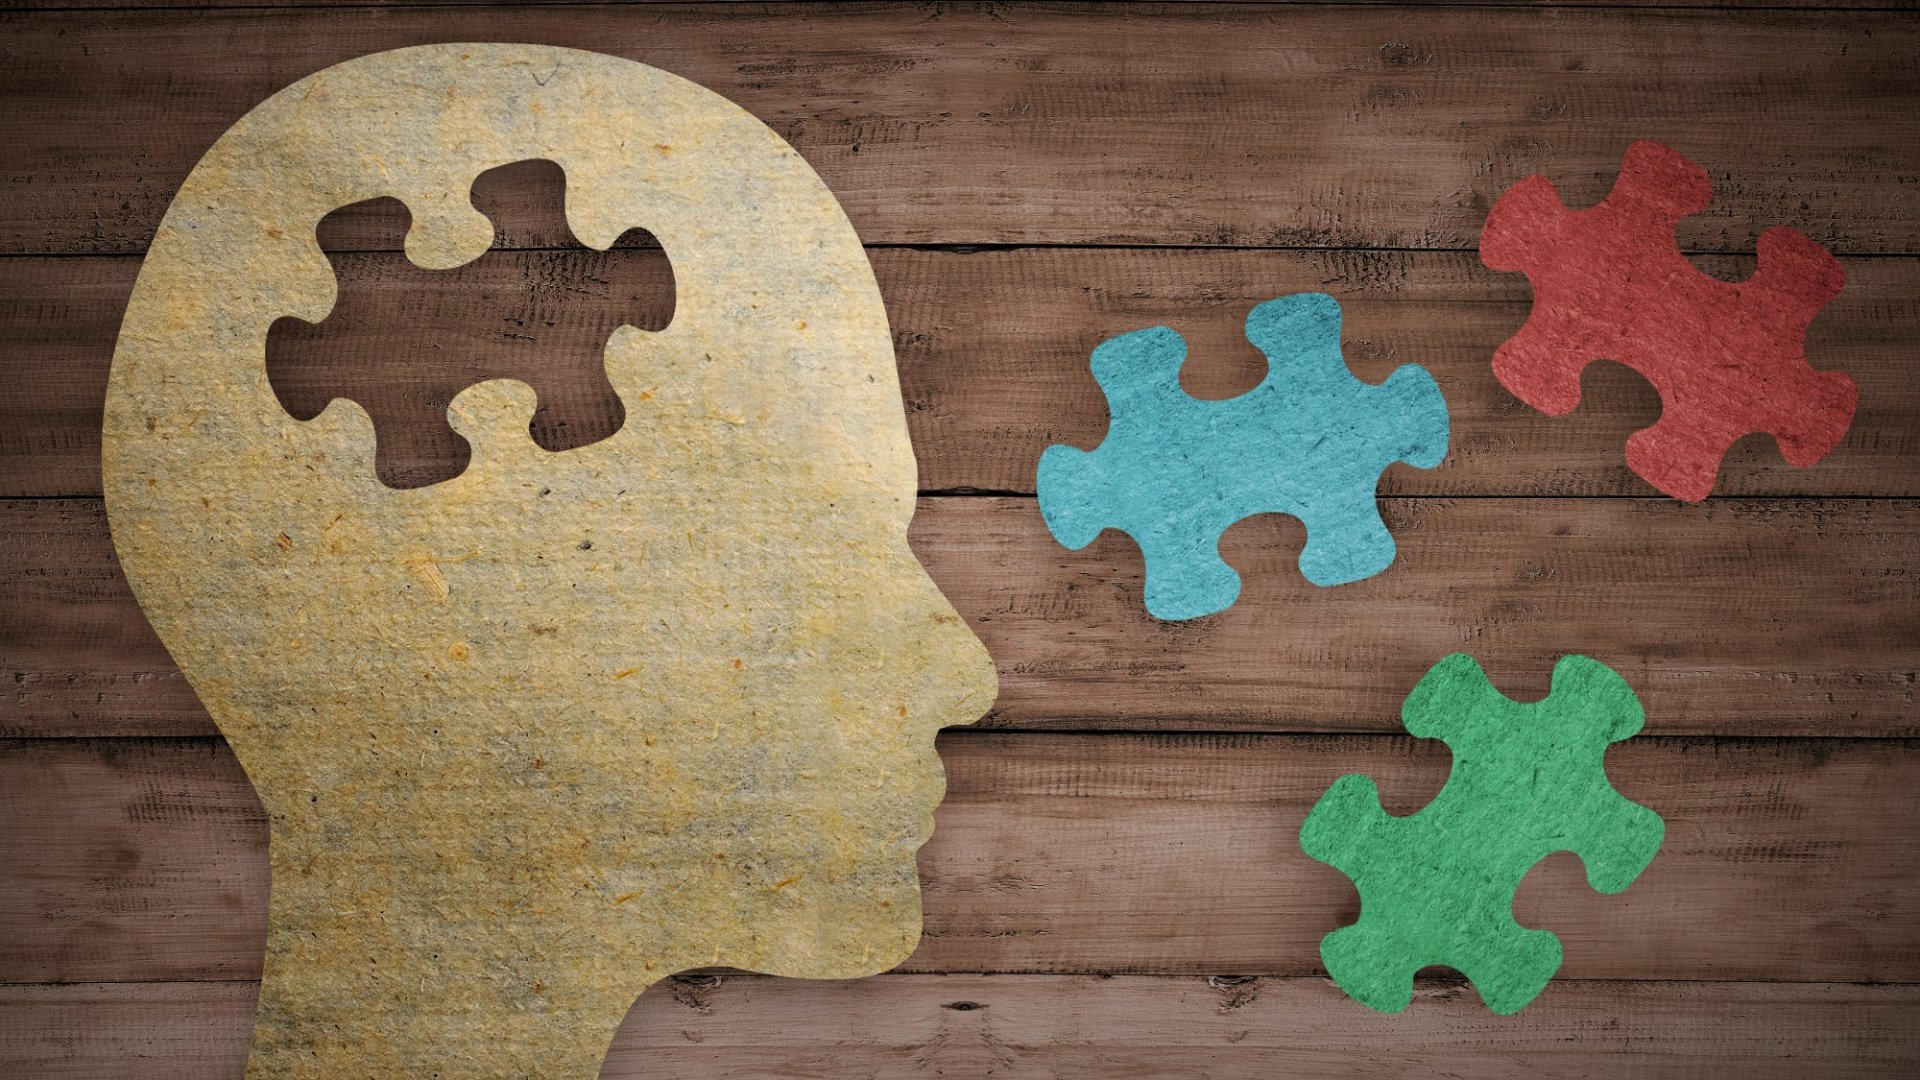 The Psychological Strategy That Will Up Your Game in Anything You Apply It To